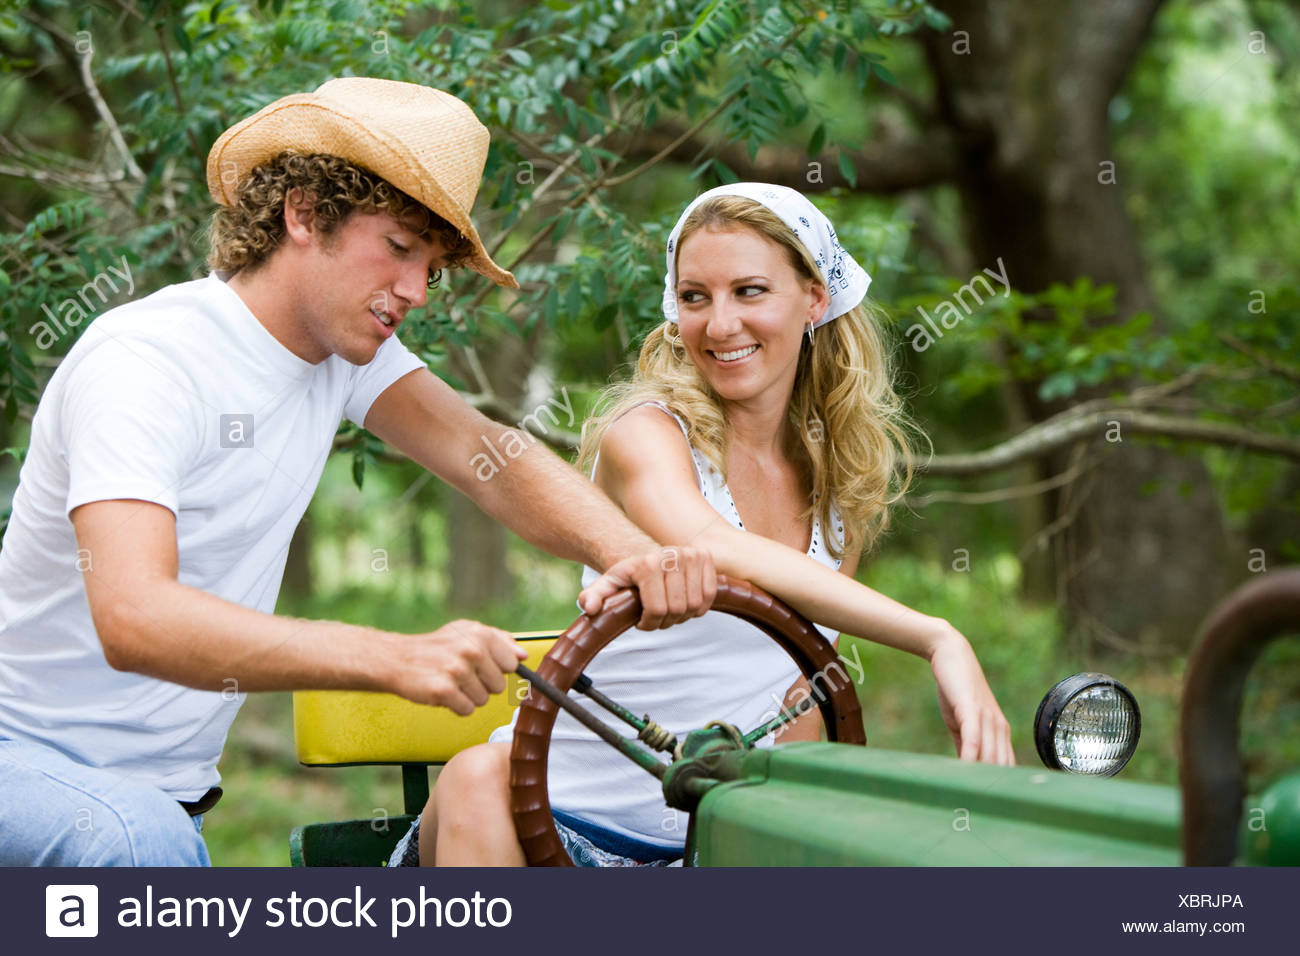 Pretty young woman on tractor with man in cowboy hat - Stock Image